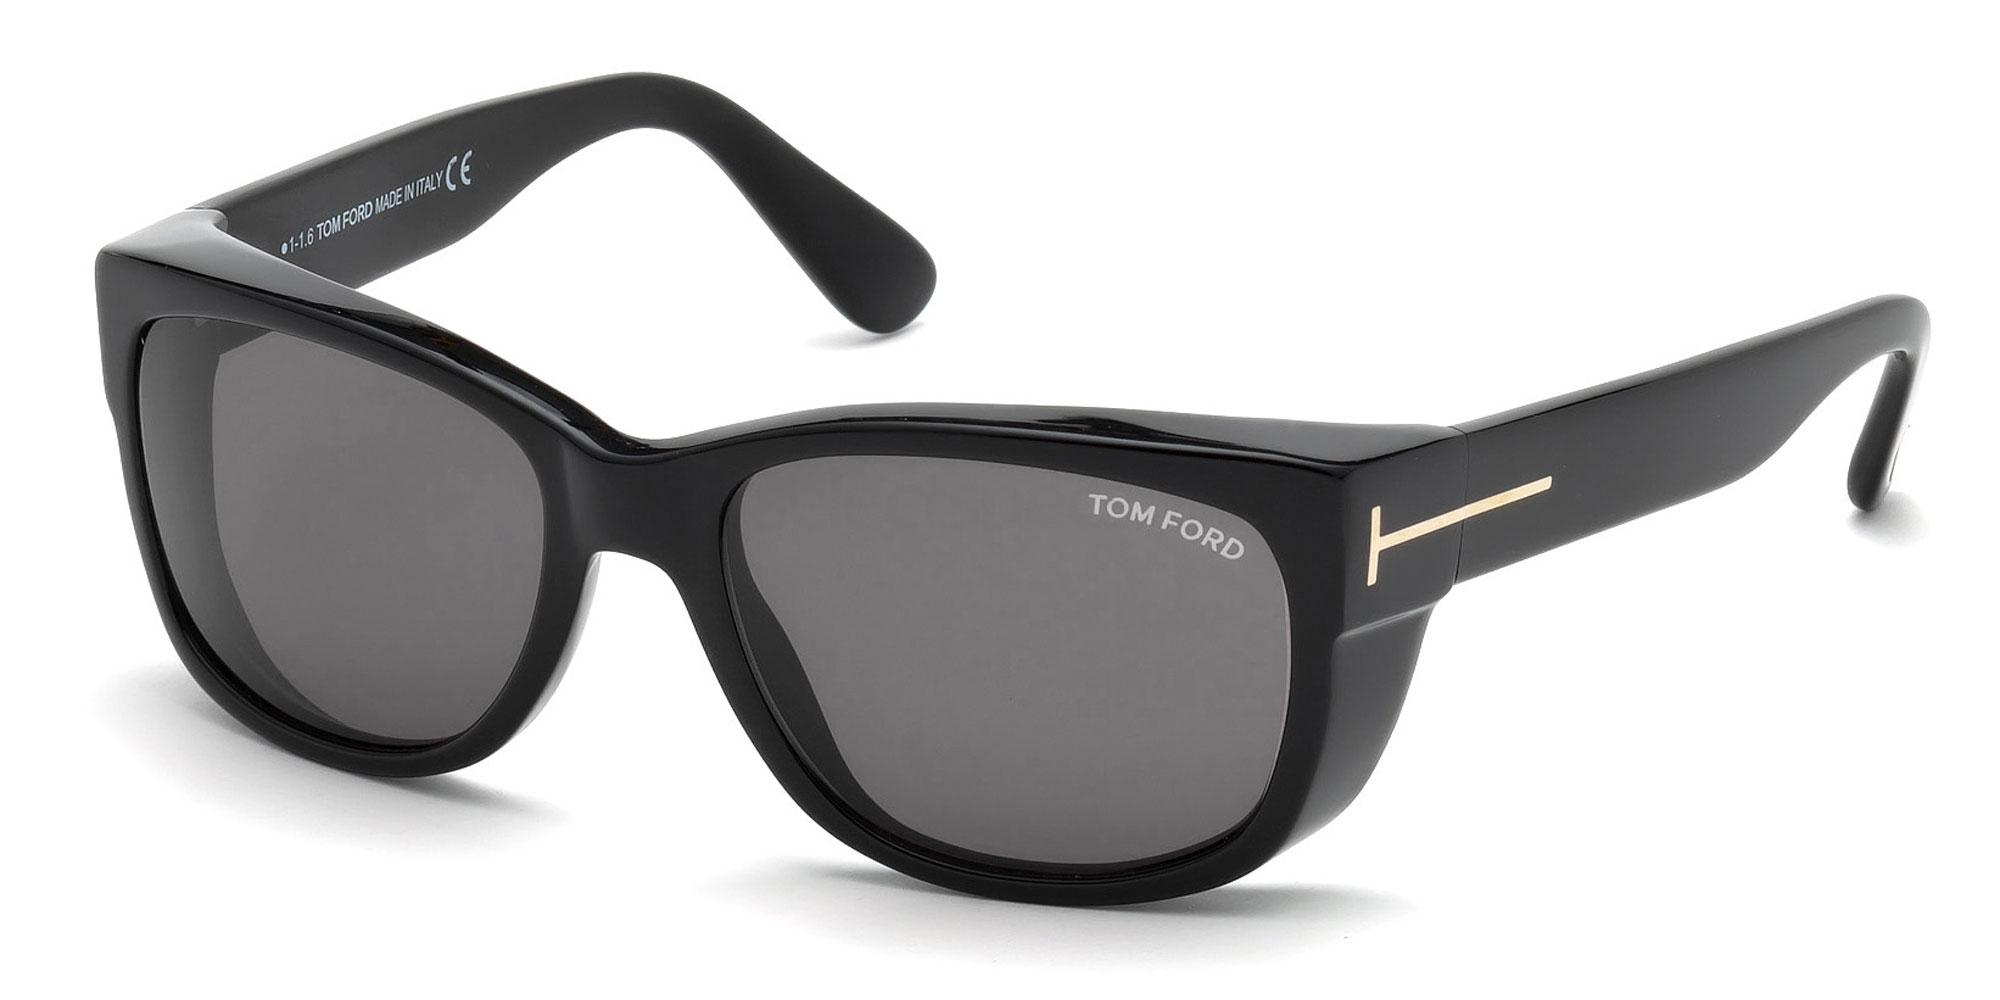 01A FT0441 , Tom Ford